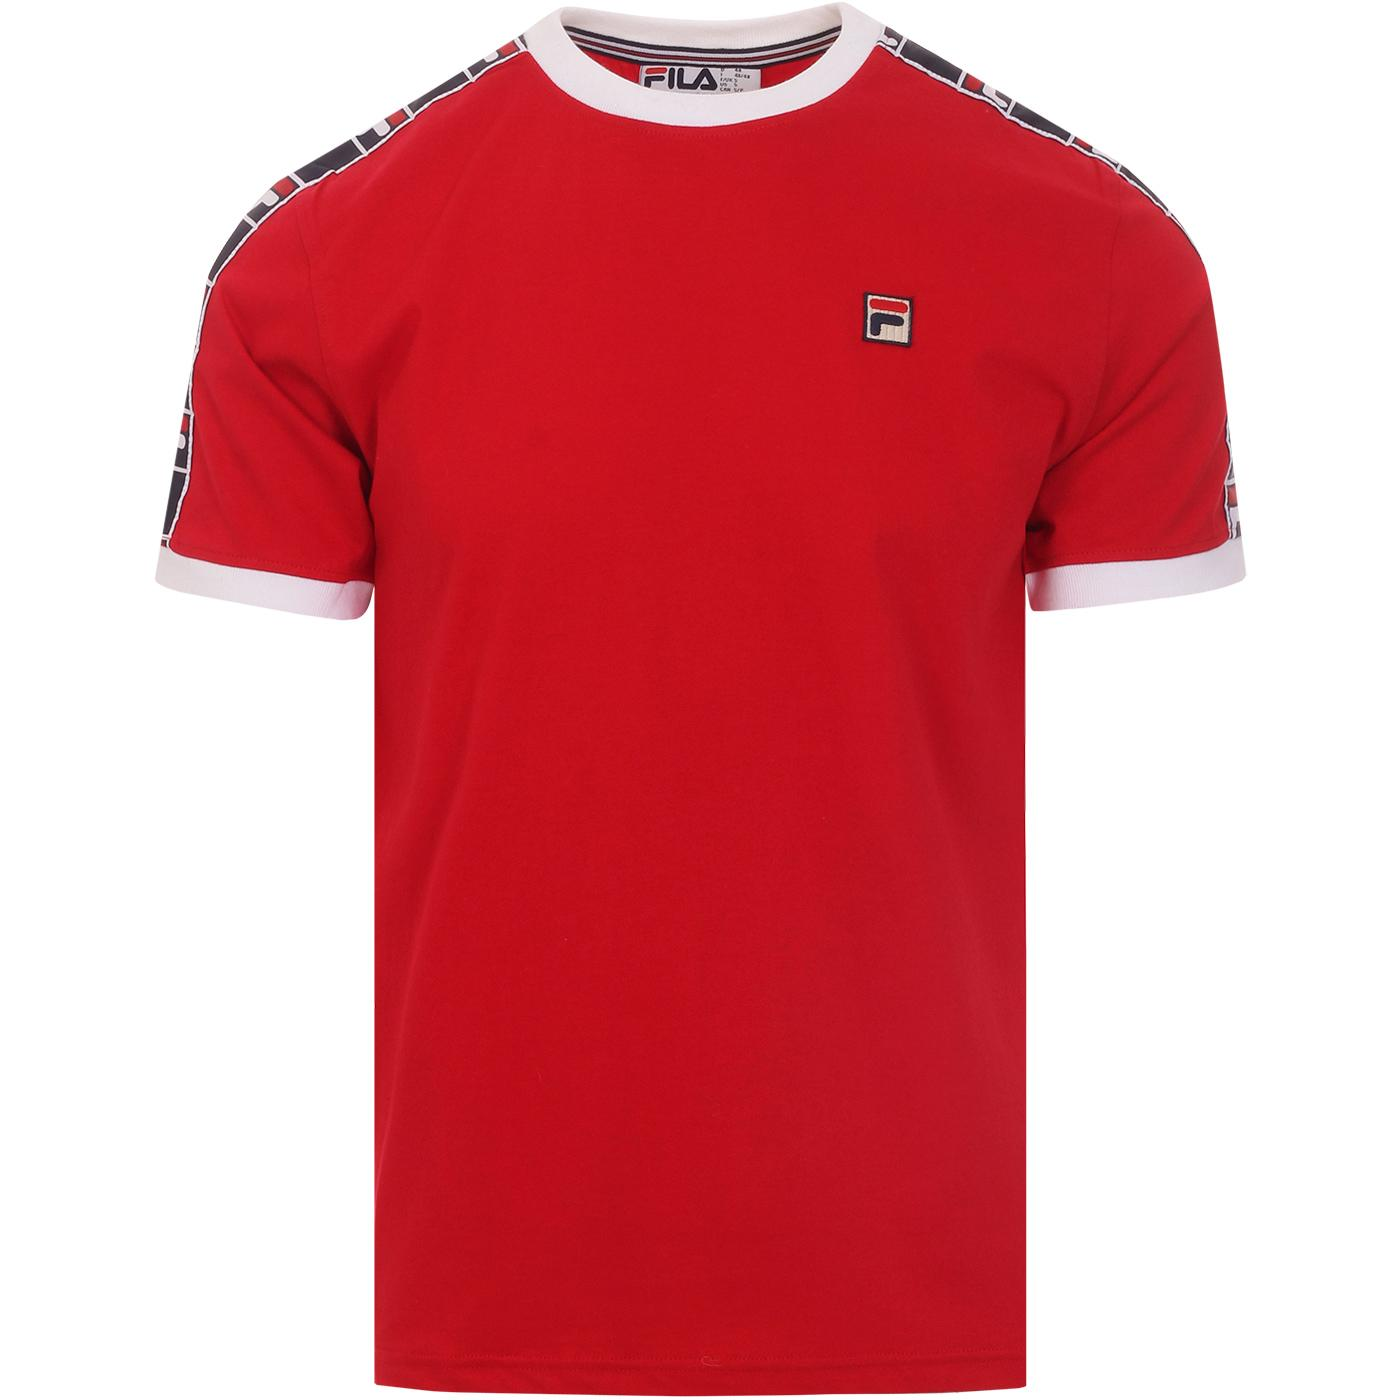 Luca FILA VINTAGE Taped Sleeve Ringer T-shirt RED